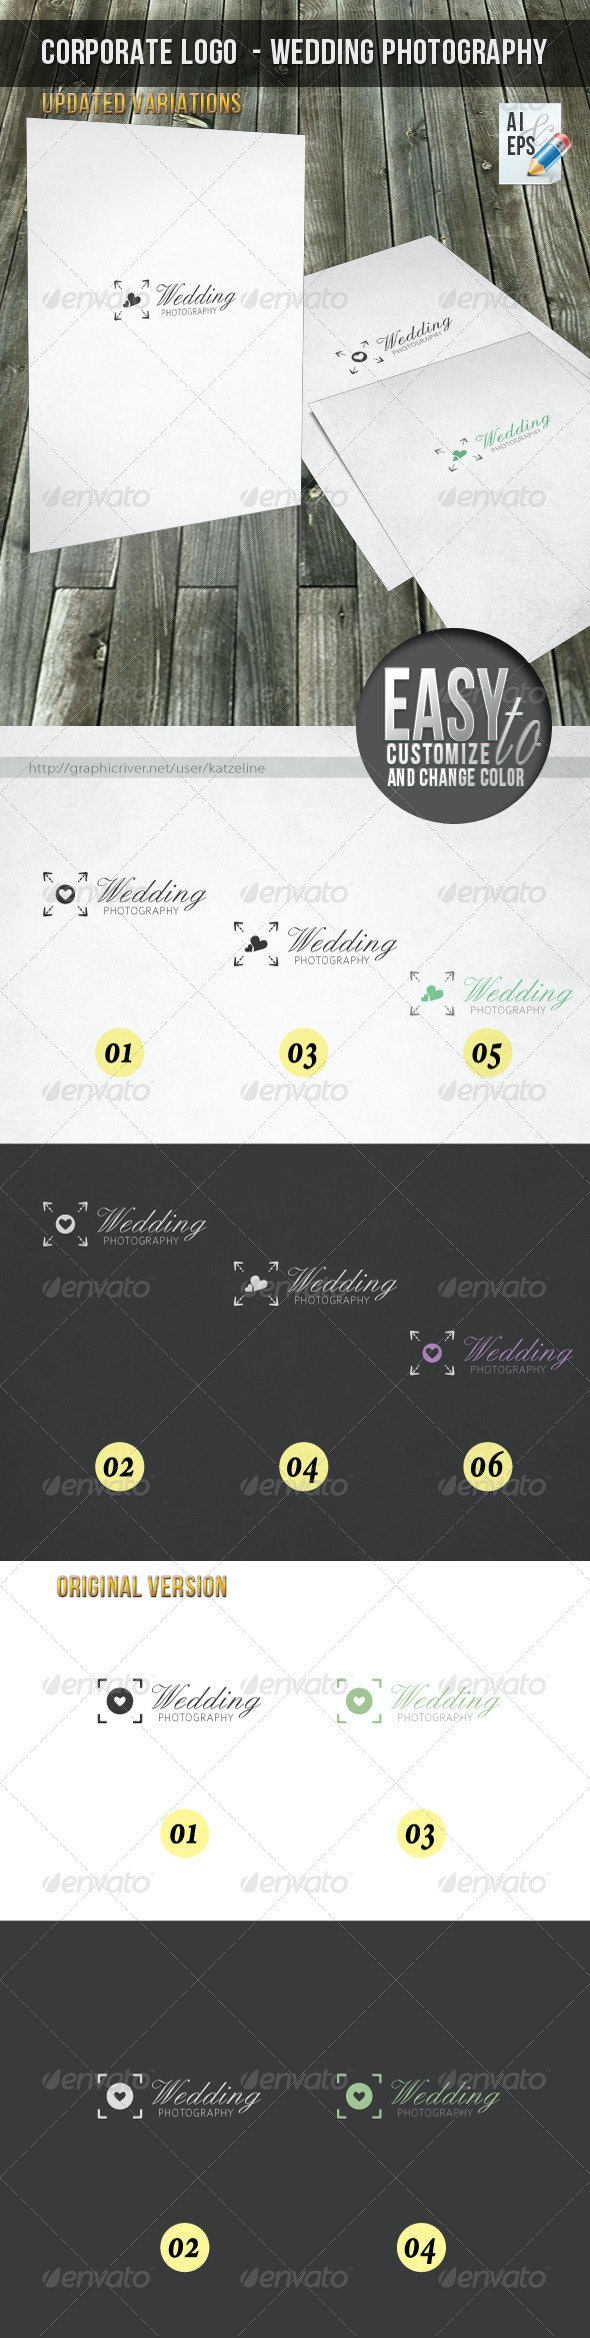 Corporate Logo - Wedding Photography  - Objects Logo Templates